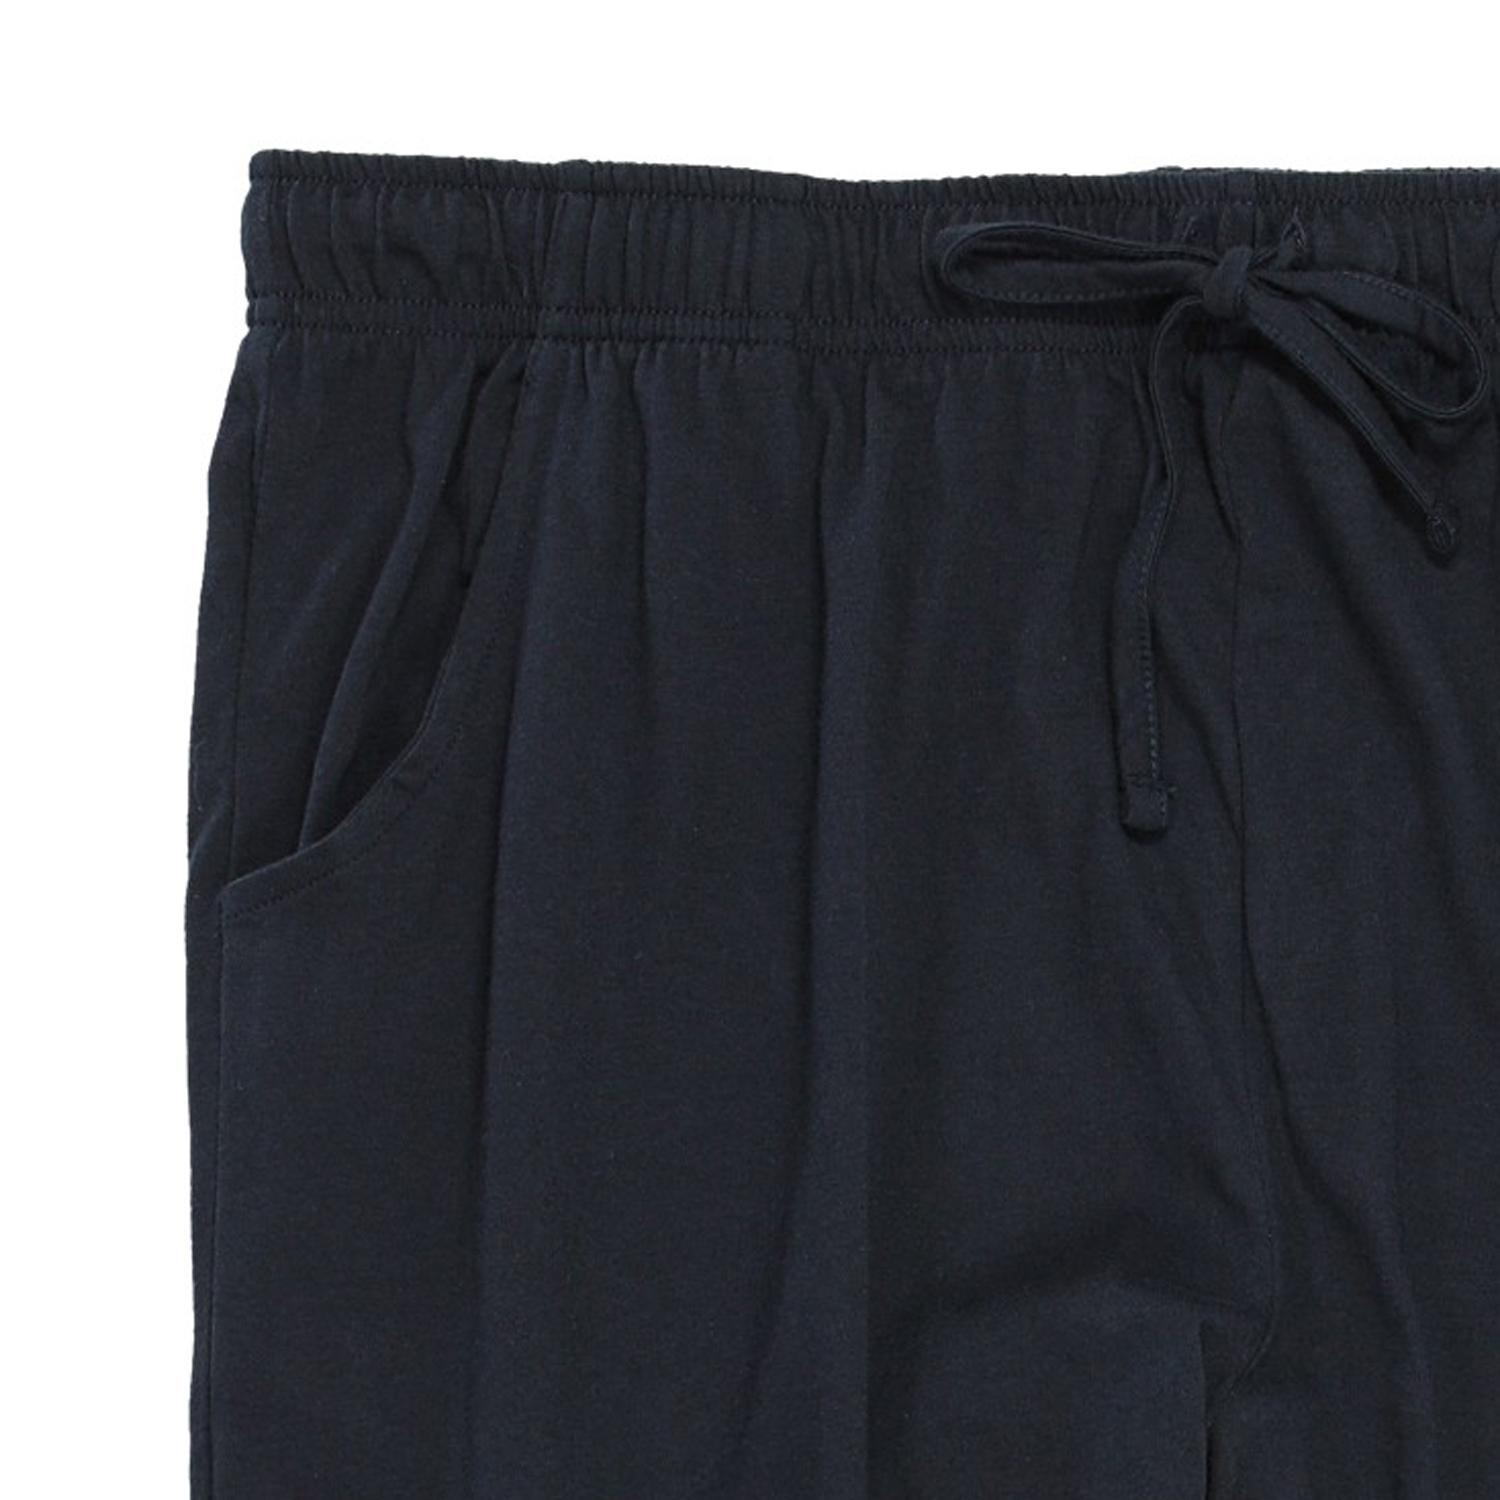 Detail Image to Pyjama shorts in dark blue by Ceceba in oversizes up to 9XL